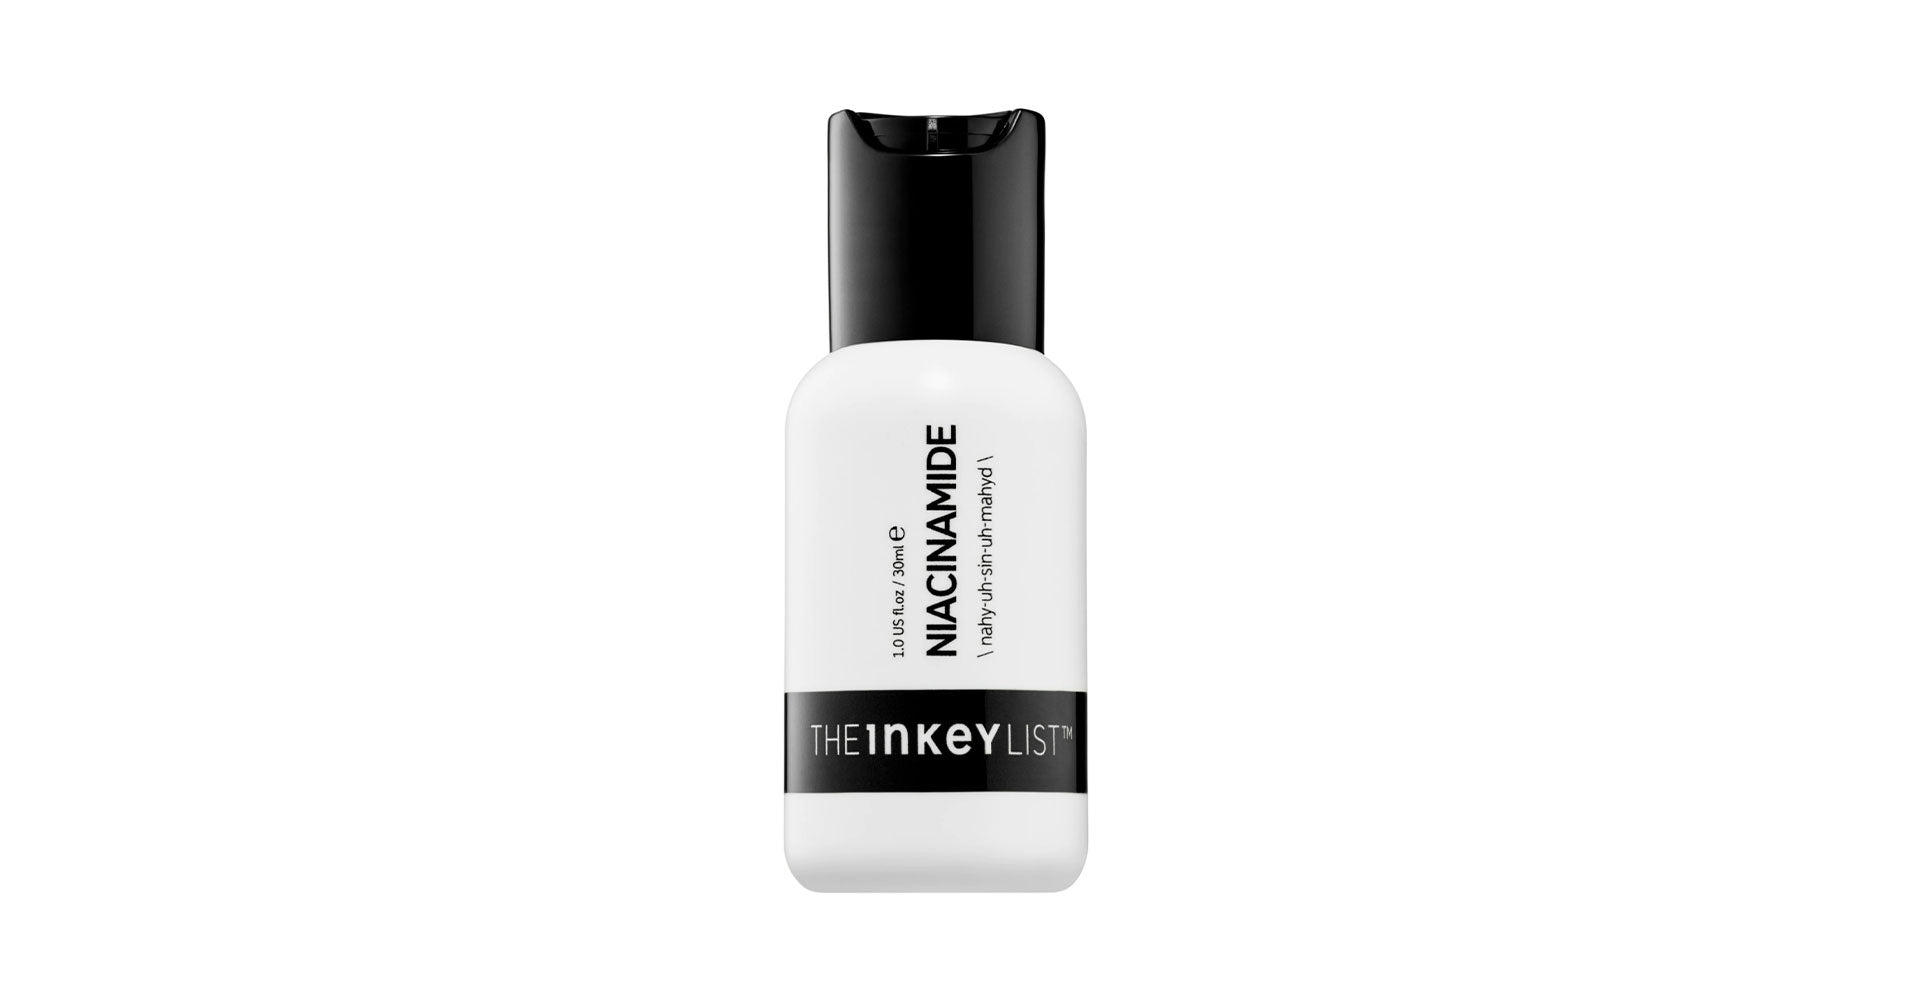 The Inkey List's Niacinamide Oil Control Serum